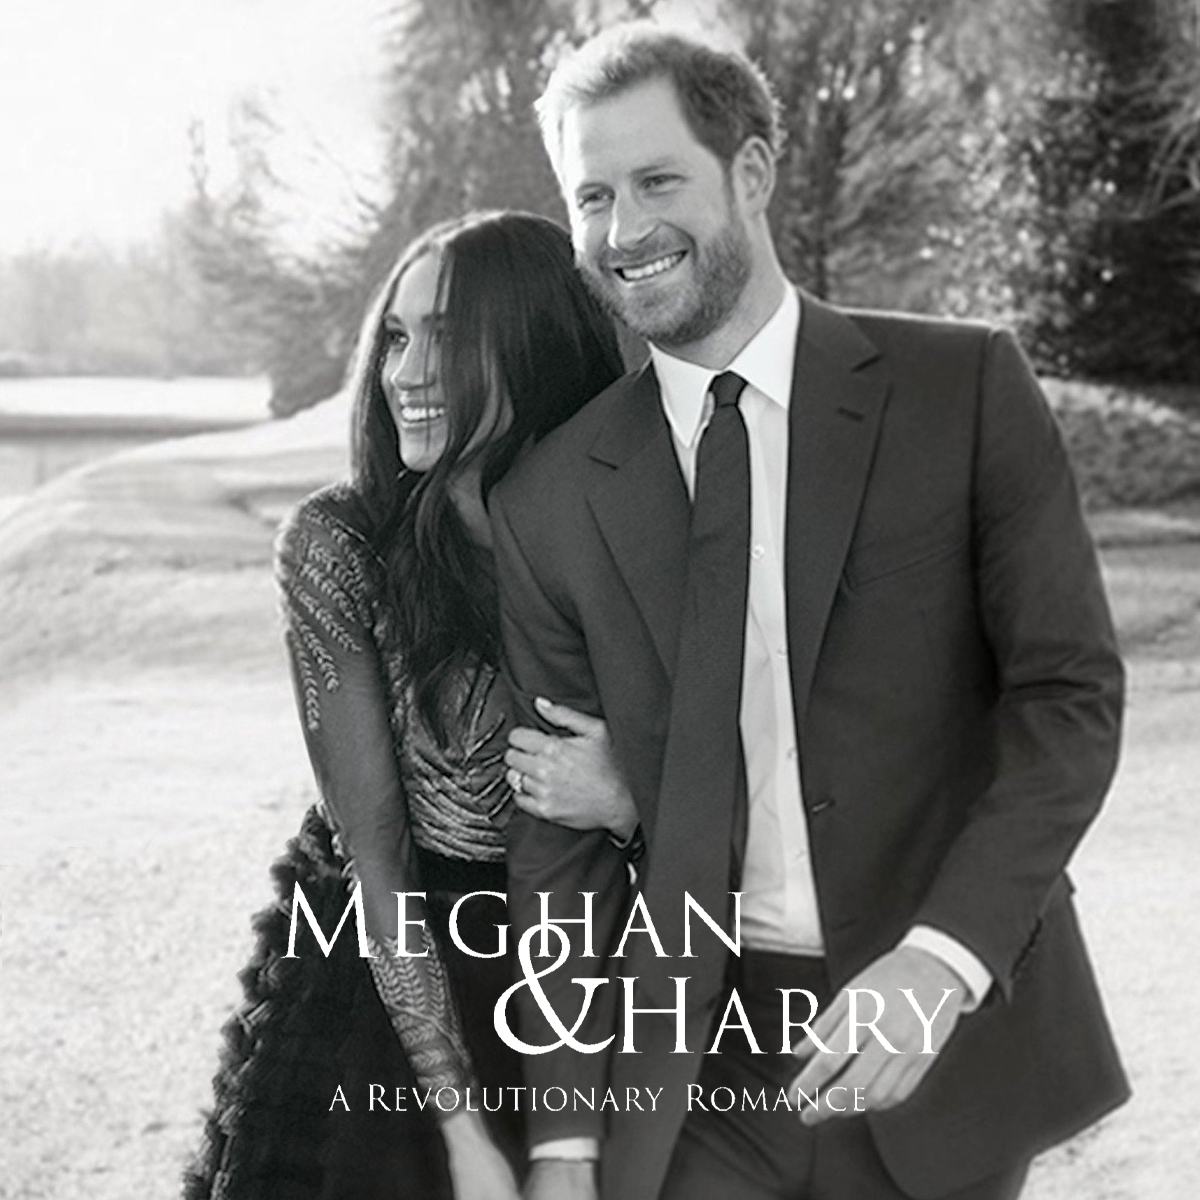 Meghan and Harry - A Revolutionary Romance